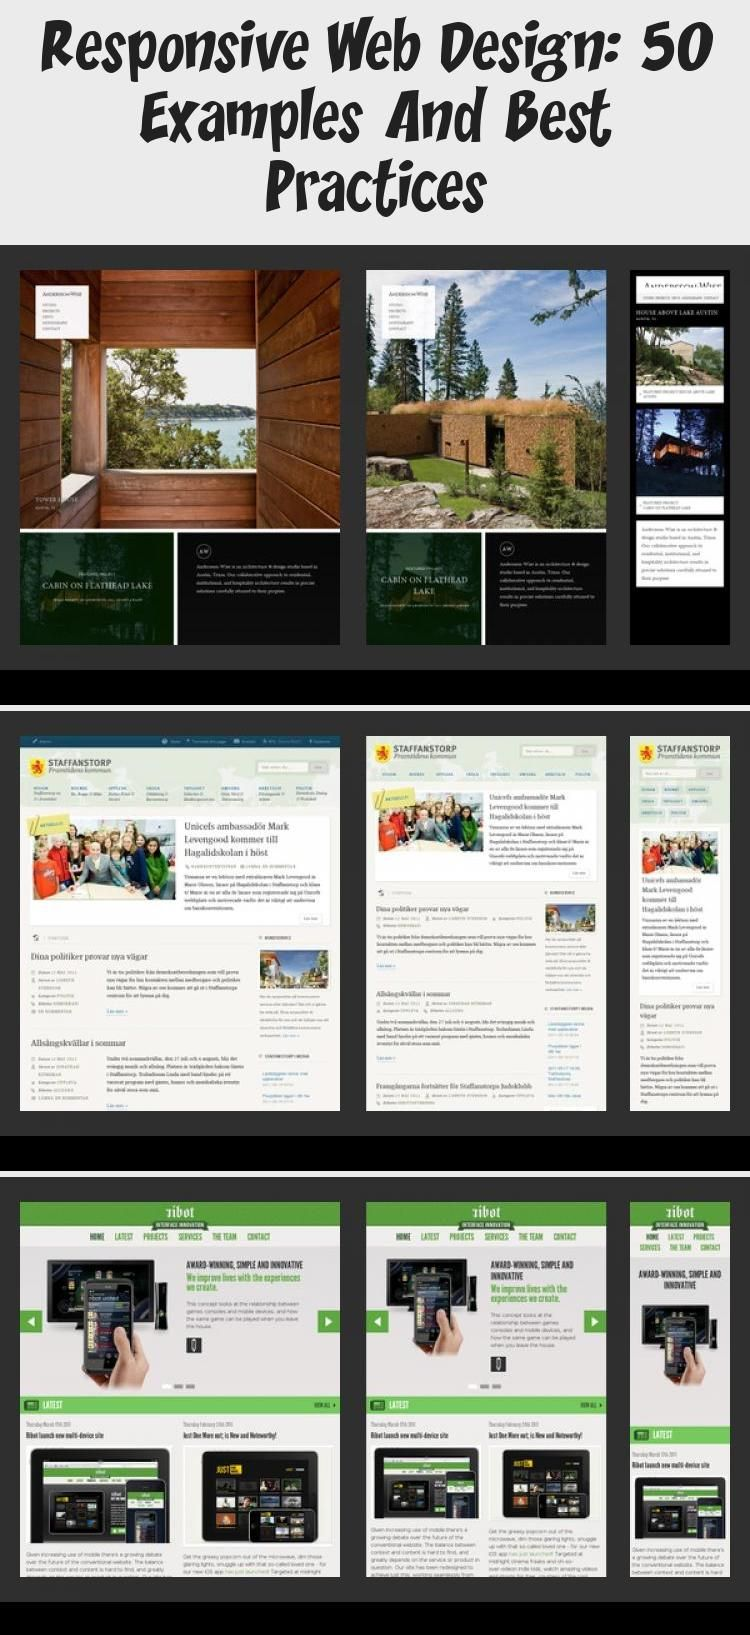 Responsive Web Design 50 Examples And Best Practices In 2020 Web Design Beautiful Web Design Web Design Examples